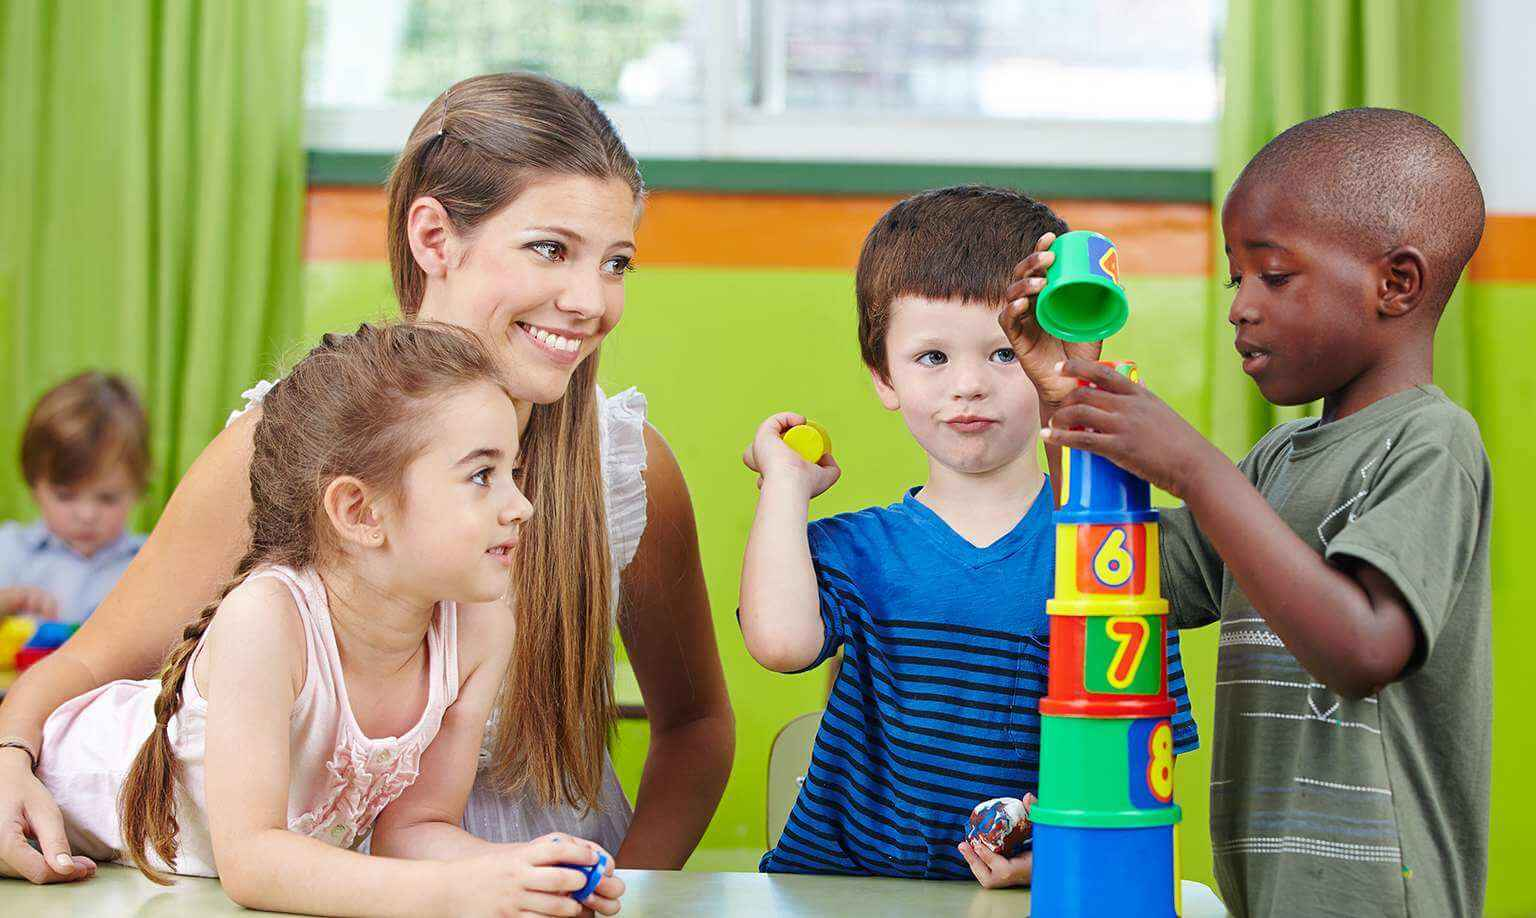 Making Daycare Facilities Safer and Cleaner